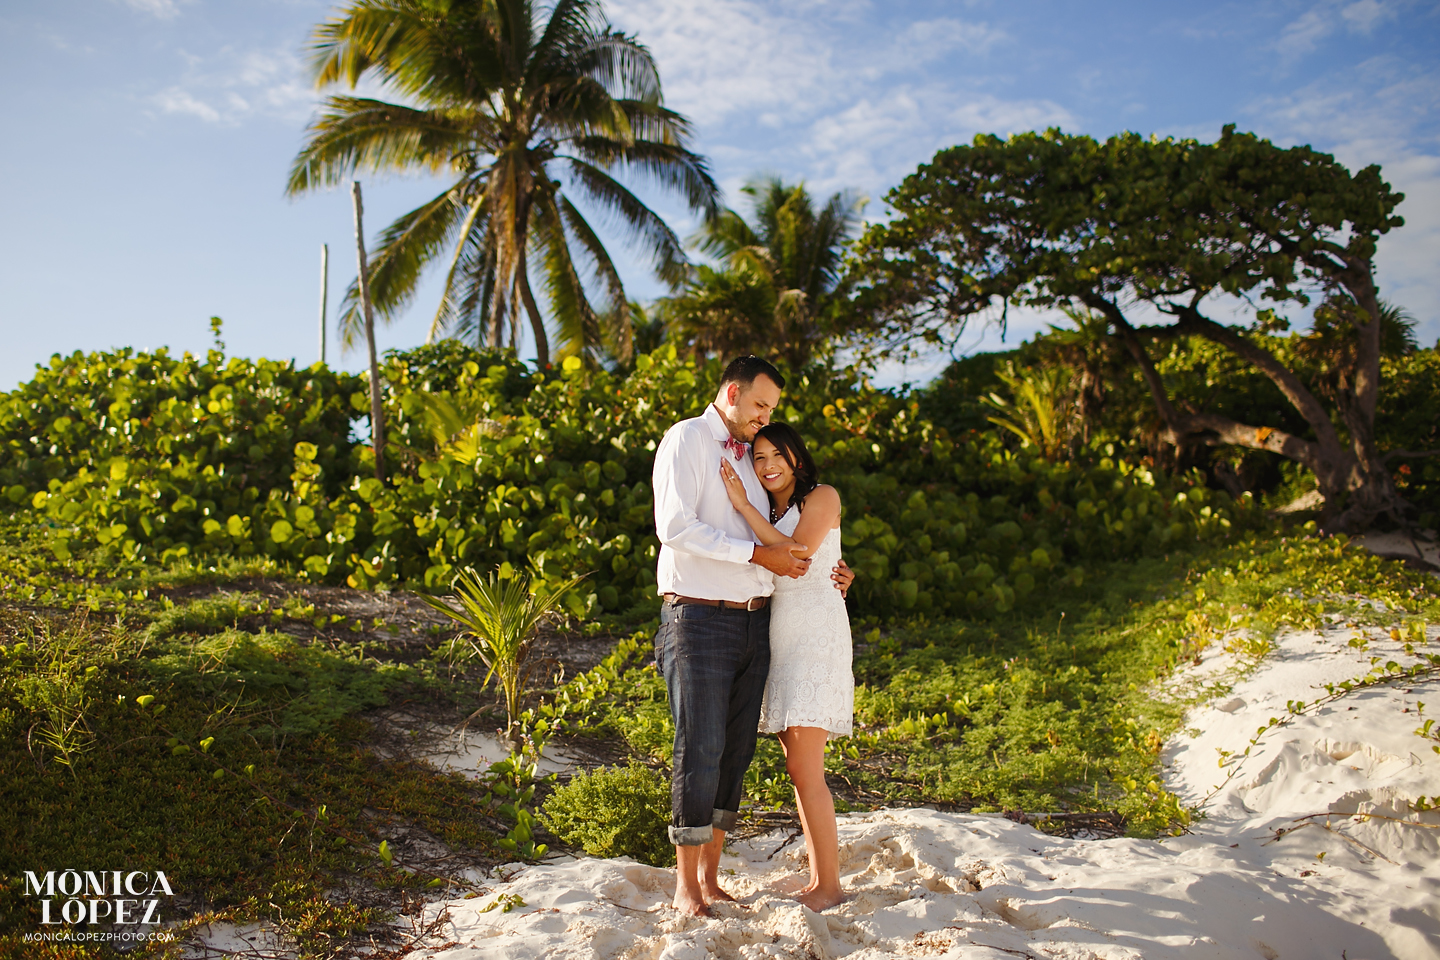 Engagement Portraits at Tulum by Monica Lopez Photography